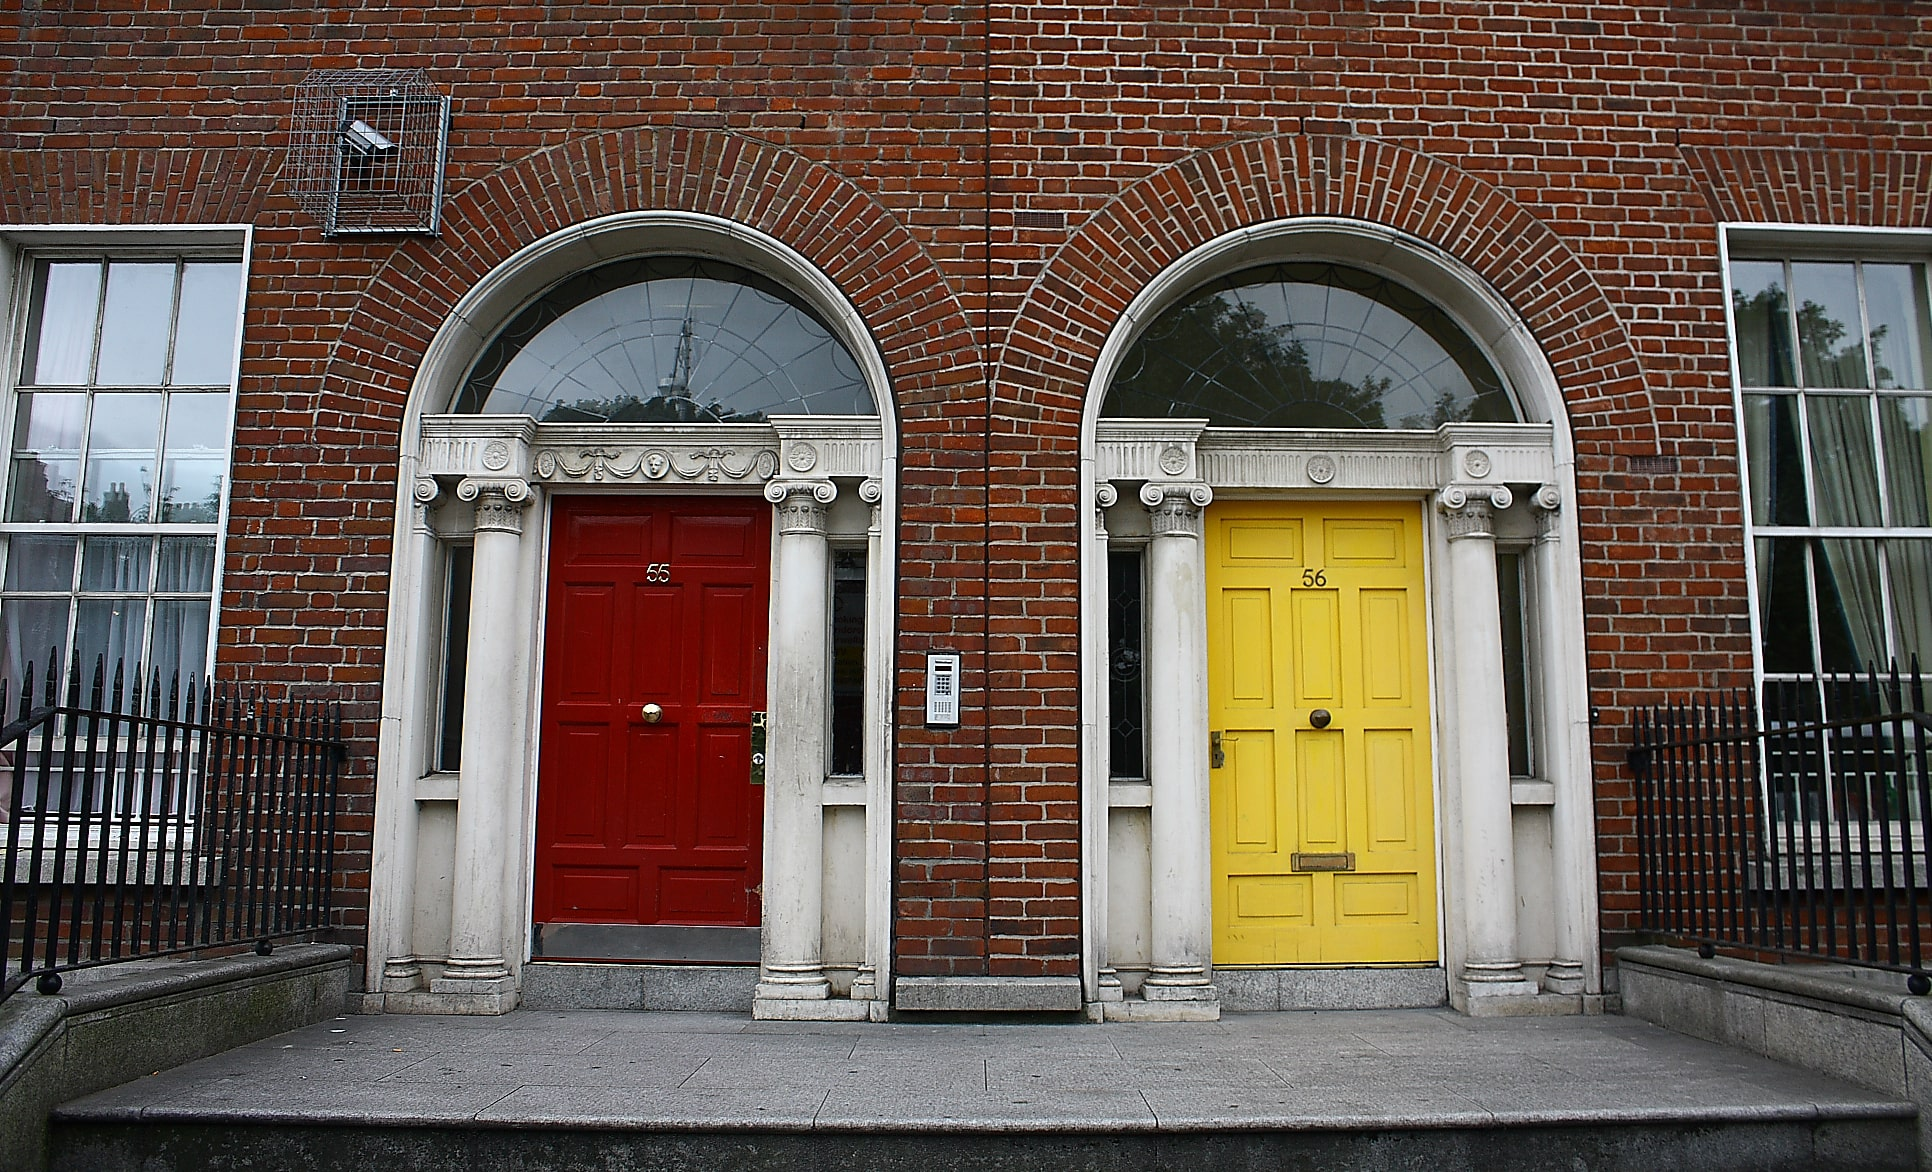 Dublin is an amazing place to visit in Ireland